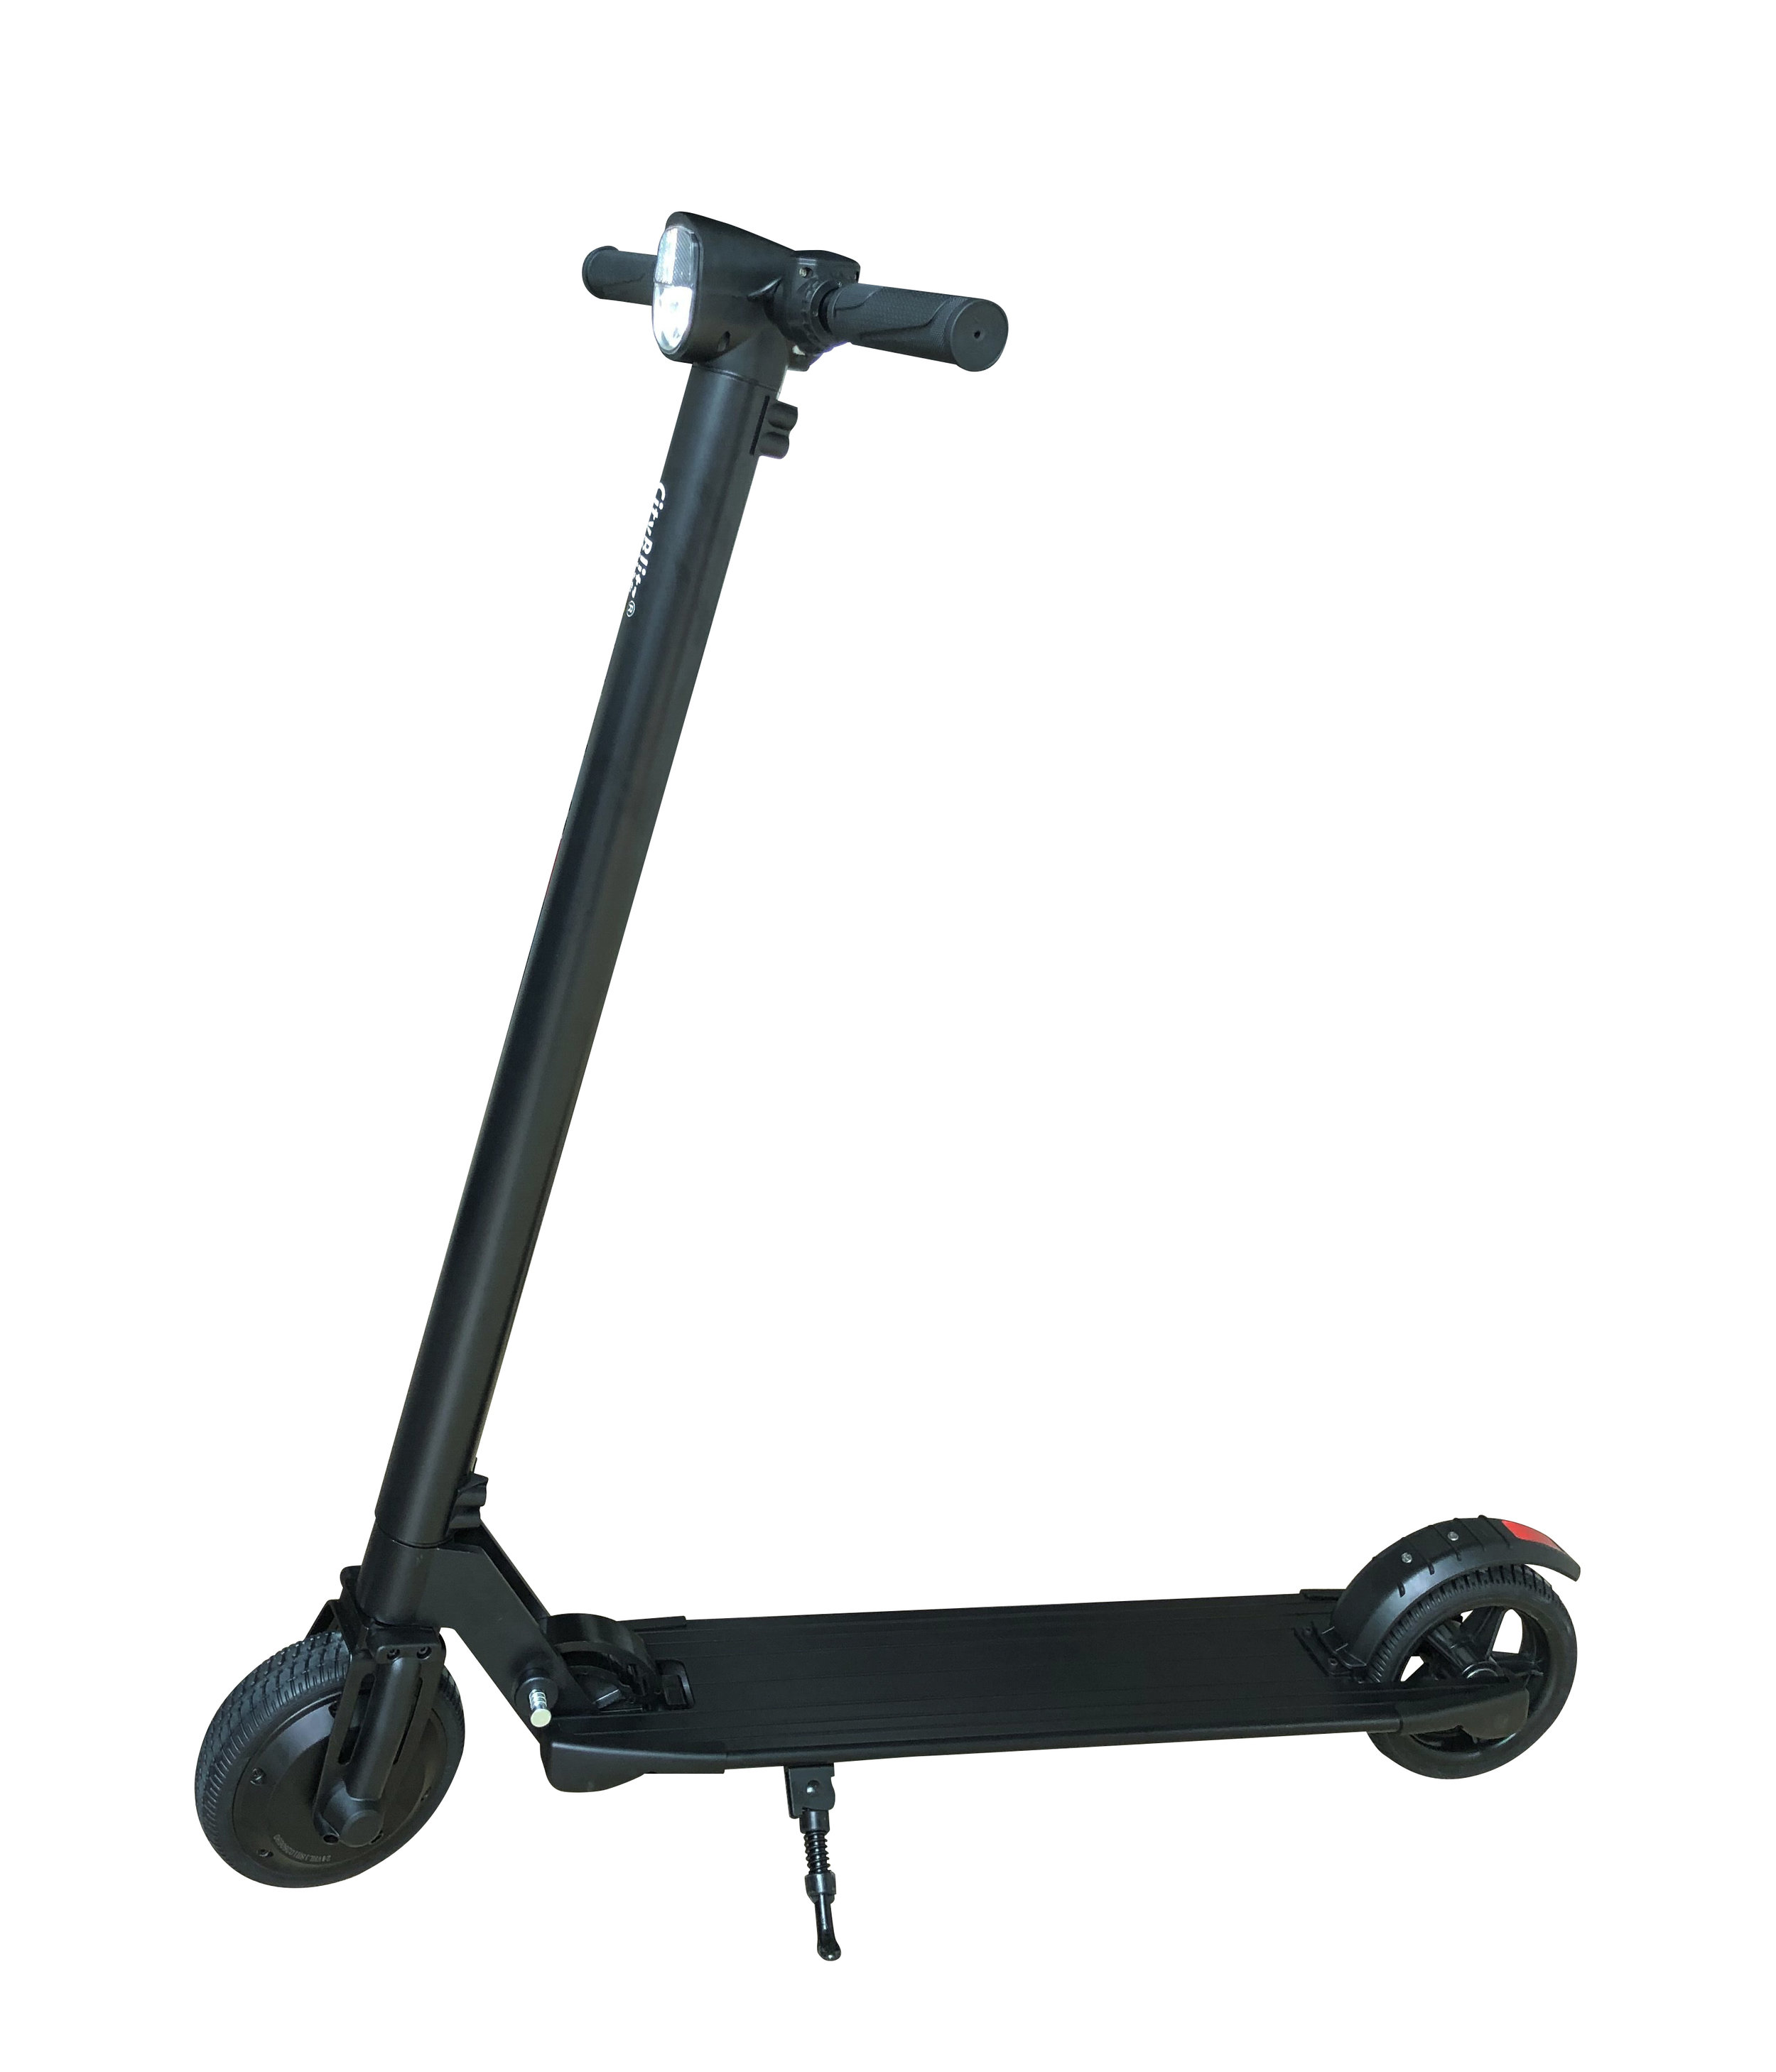 CityBlitz® E-Scooter BIZ - Model Number: CB014aTires 8'Brakes Front (electric) & back (physical)Motor 250 Watt frontBattery 4400 mAh in tubeLights FrontDisplay on handlebar (Speed, Distance, Battery status, 3 gears)Max Speed 24 km/h (according to drivers weight and underground)Special Kickstand, Business Bag (additional)